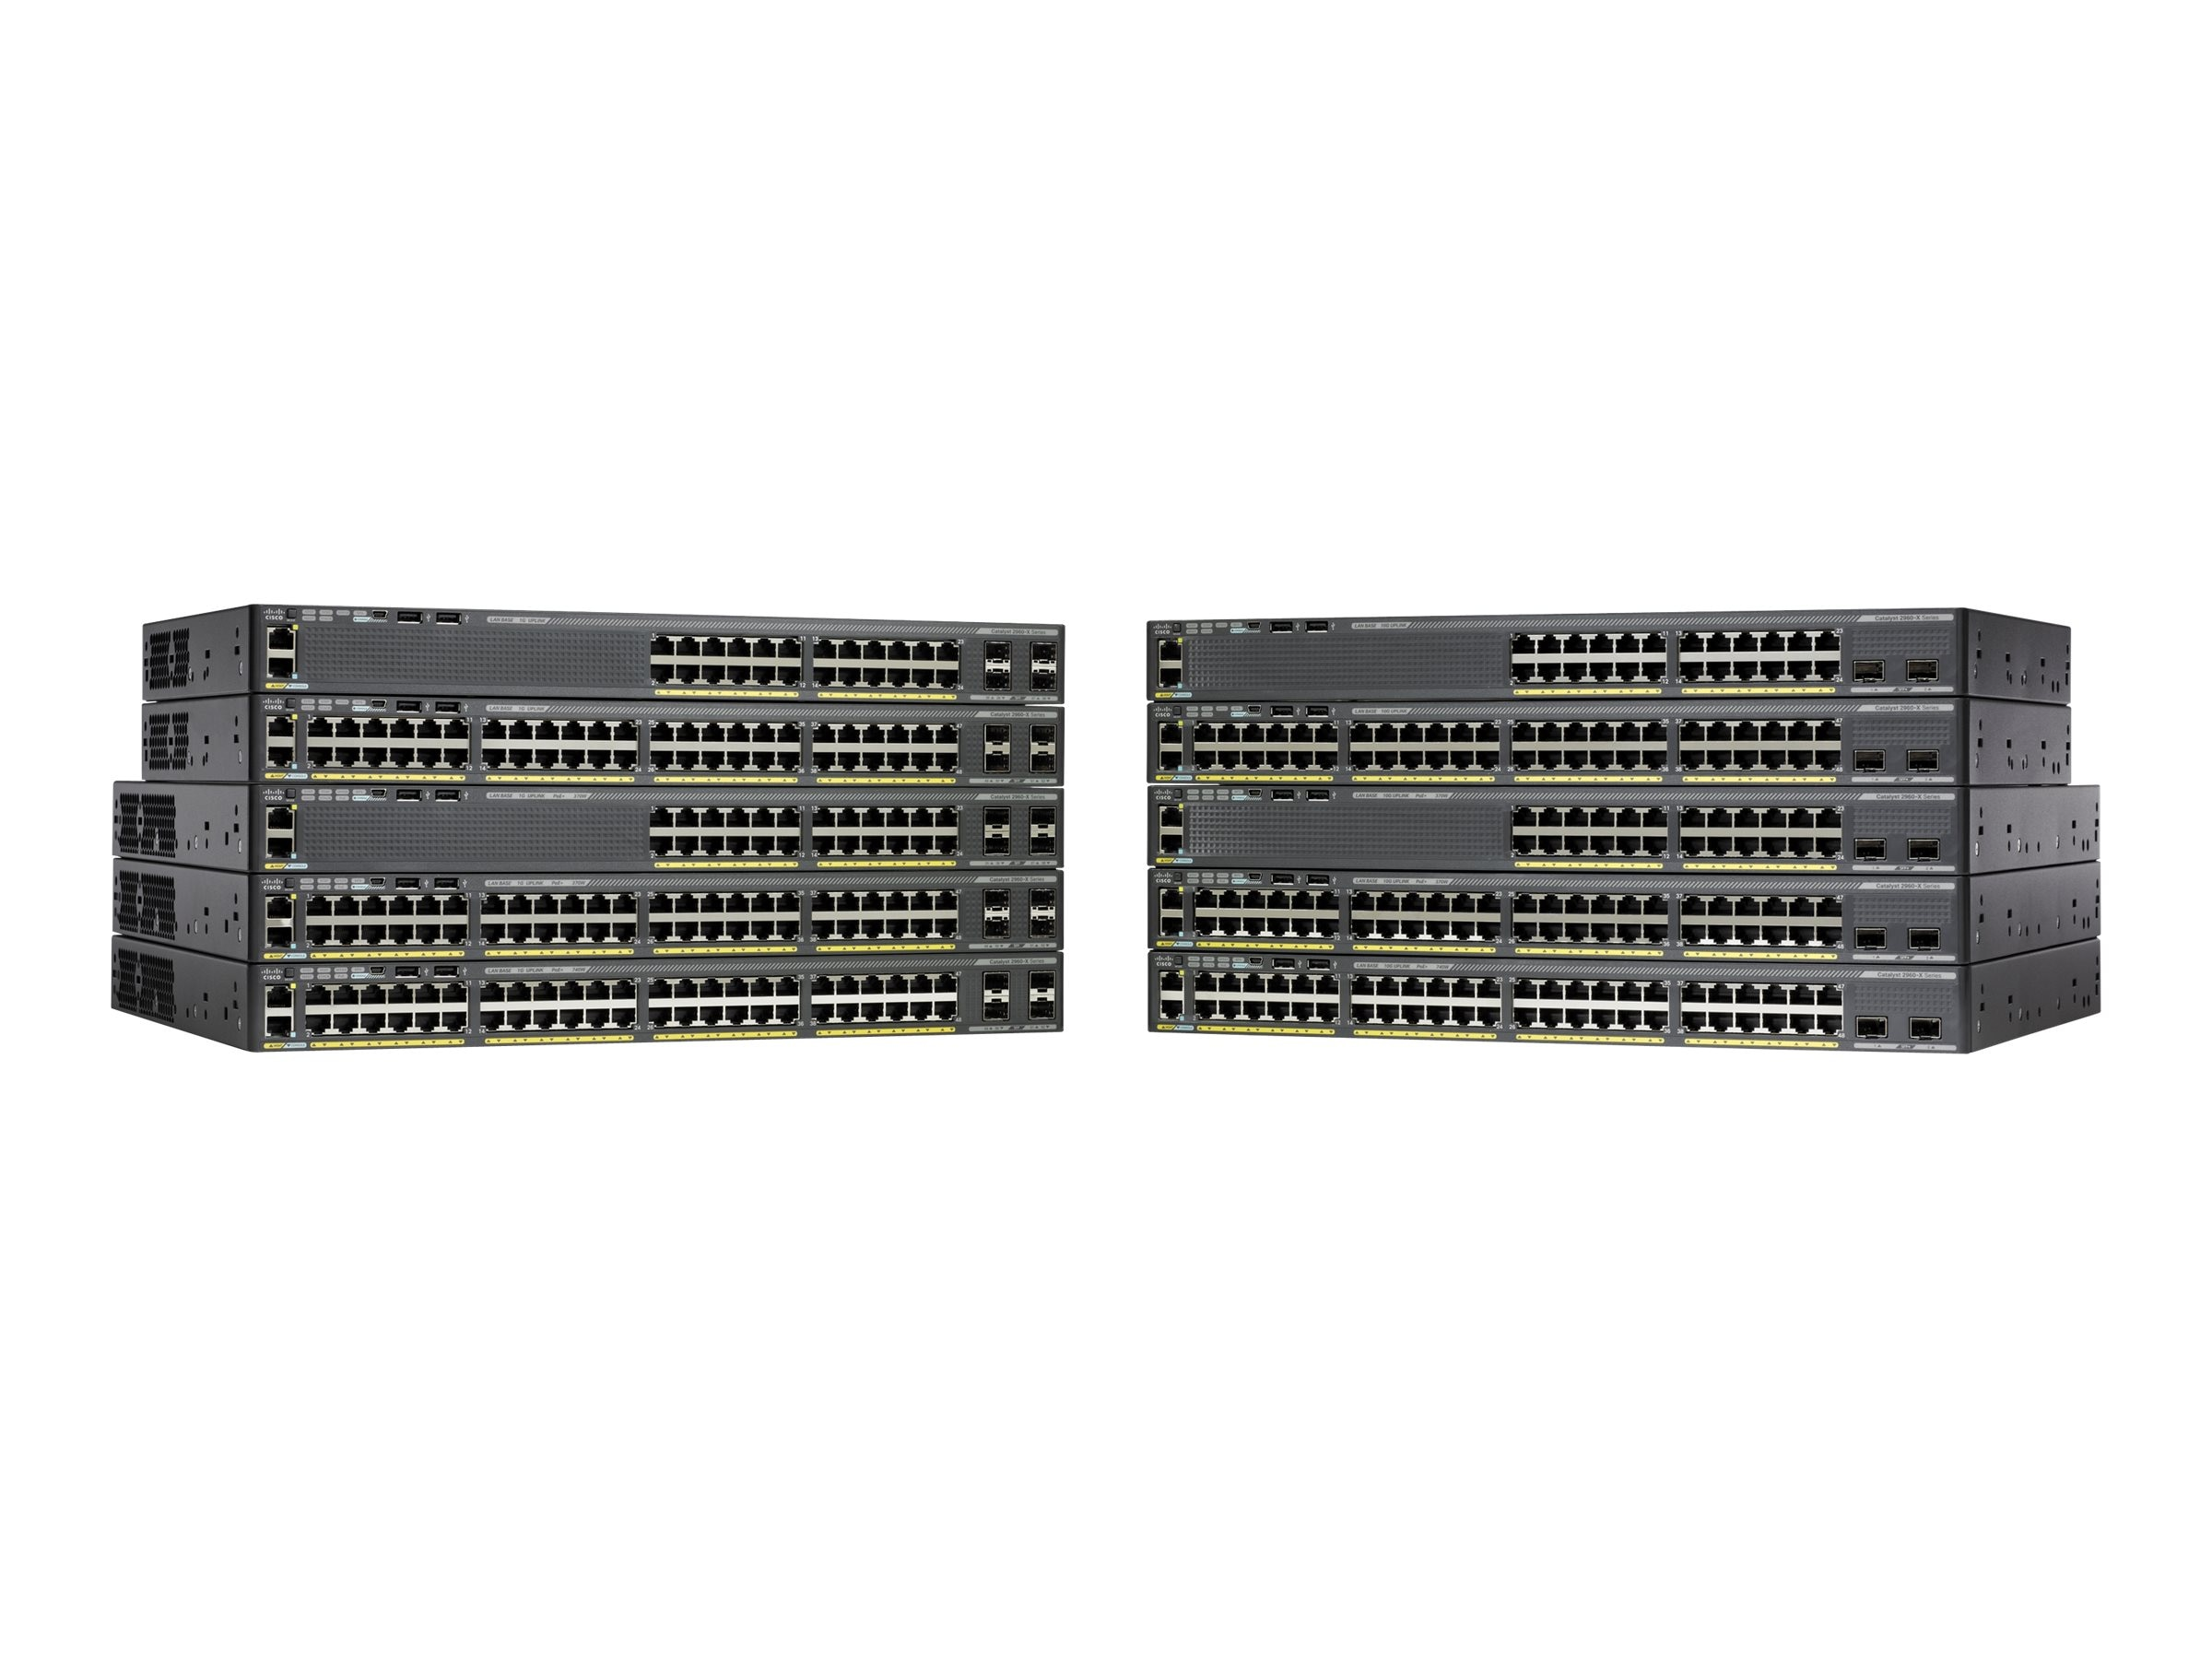 Cisco Catalyst 2960-X 48 GIGE POE 740W 4X 1G, WS-C2960X-48FPS-L, 15954691, Network Switches